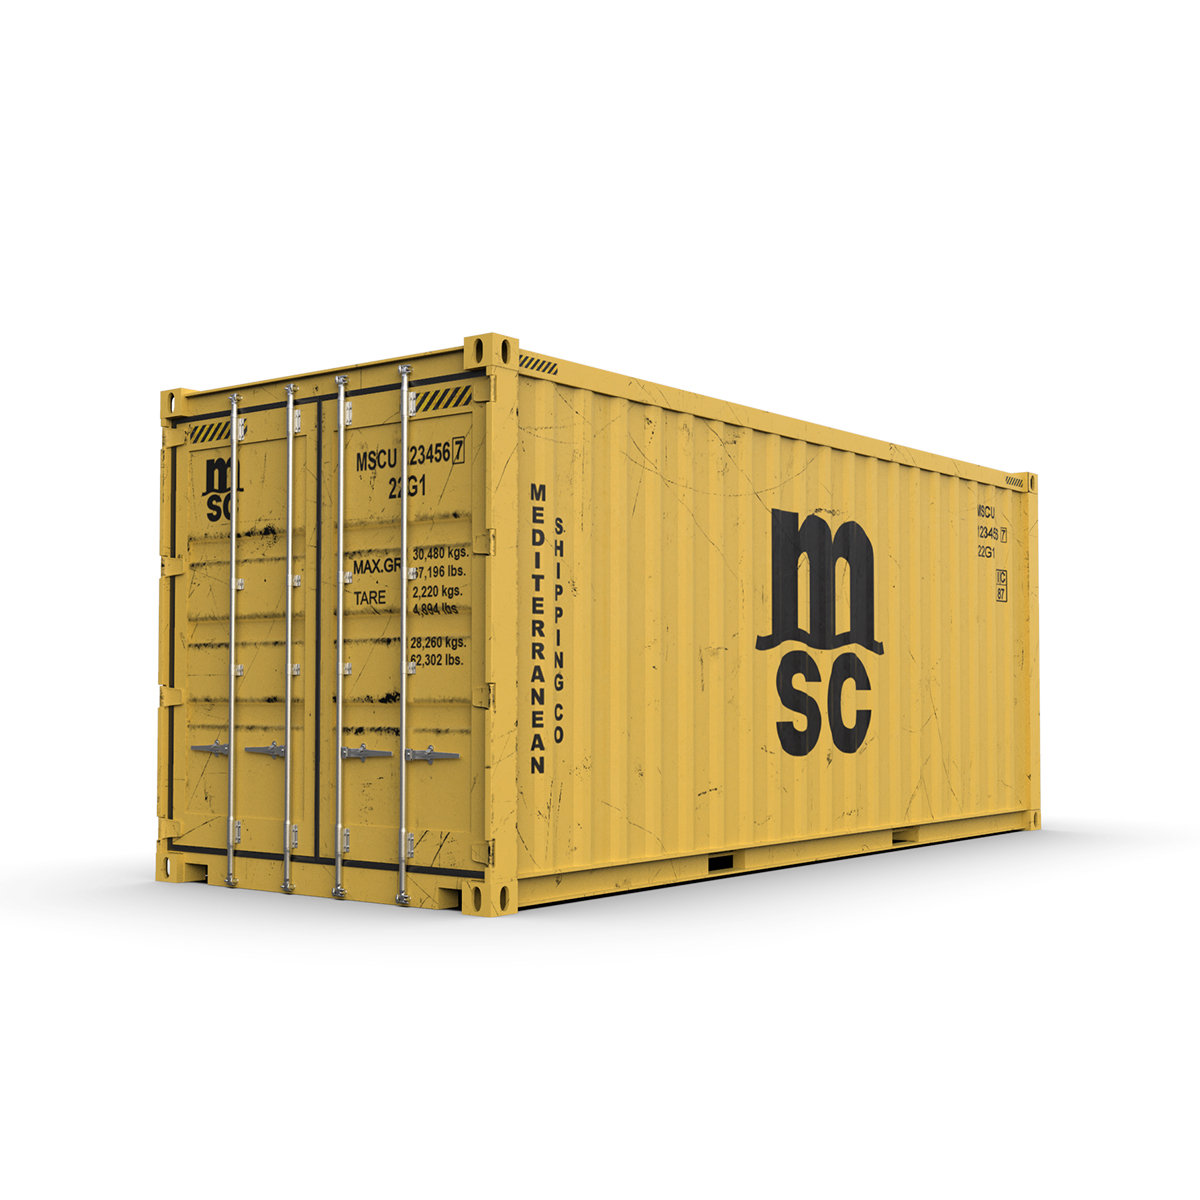 20 foot msc container envàs estàndard 3d model 3ds max fbx ma mb obj 278382